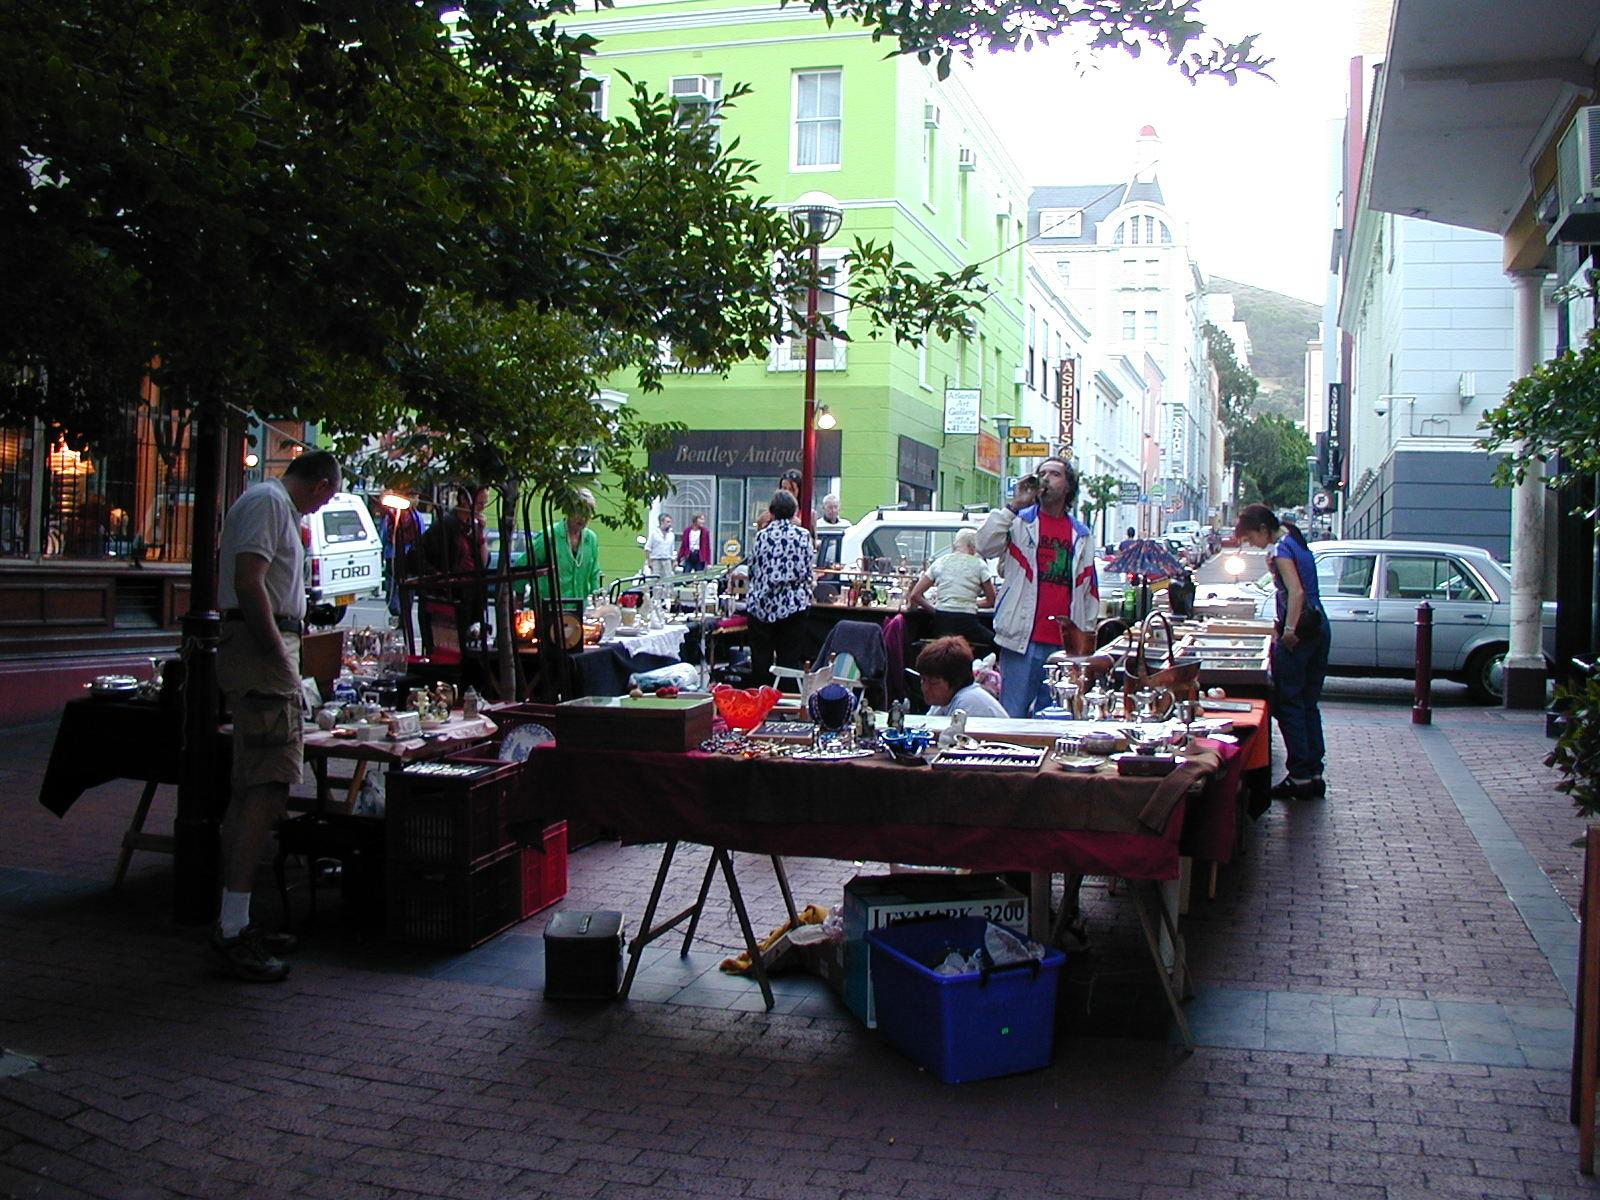 Church Street Antique Market on Church Street, Cape Town.